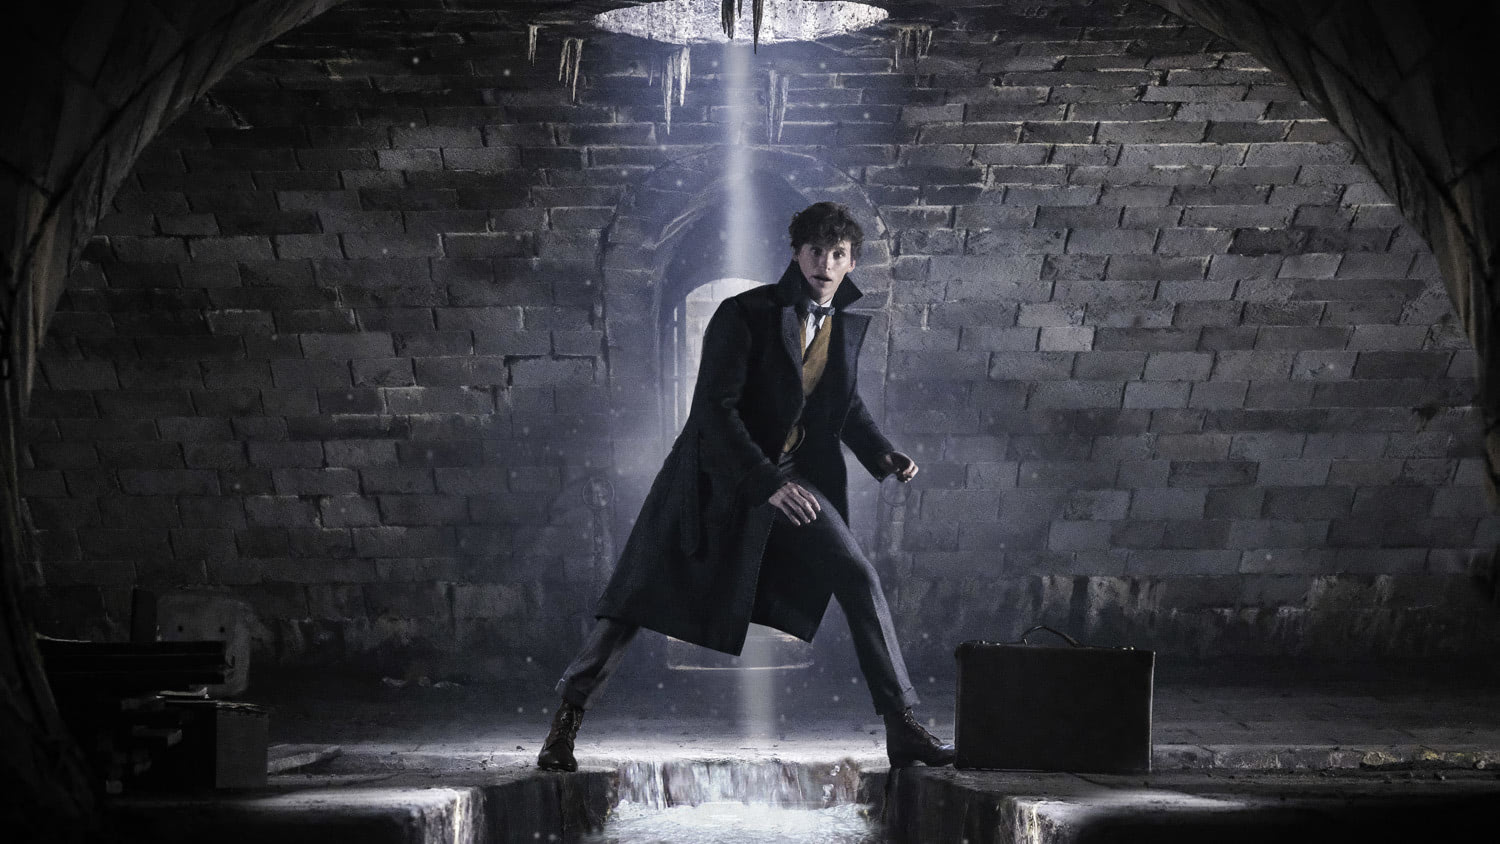 Newt Scamander in the sewers